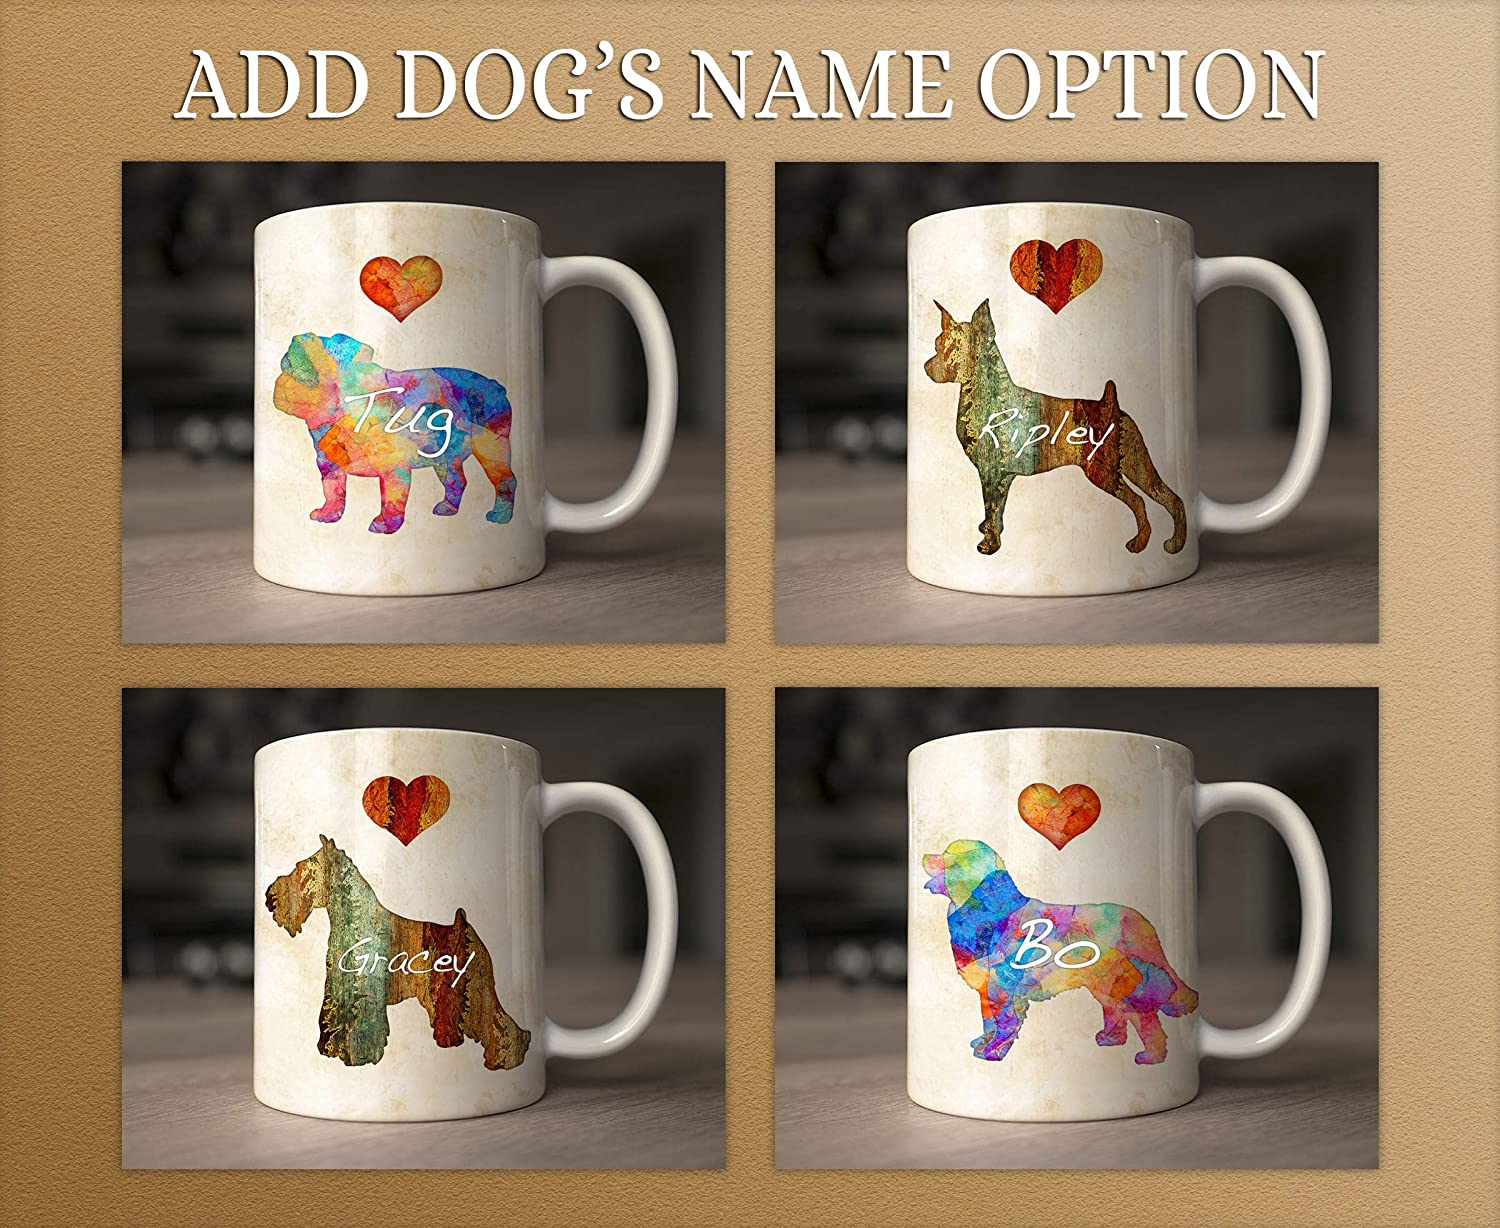 Pitbull Terrier Dog Breed Mug by Dan Morris Personalize with Dog Name